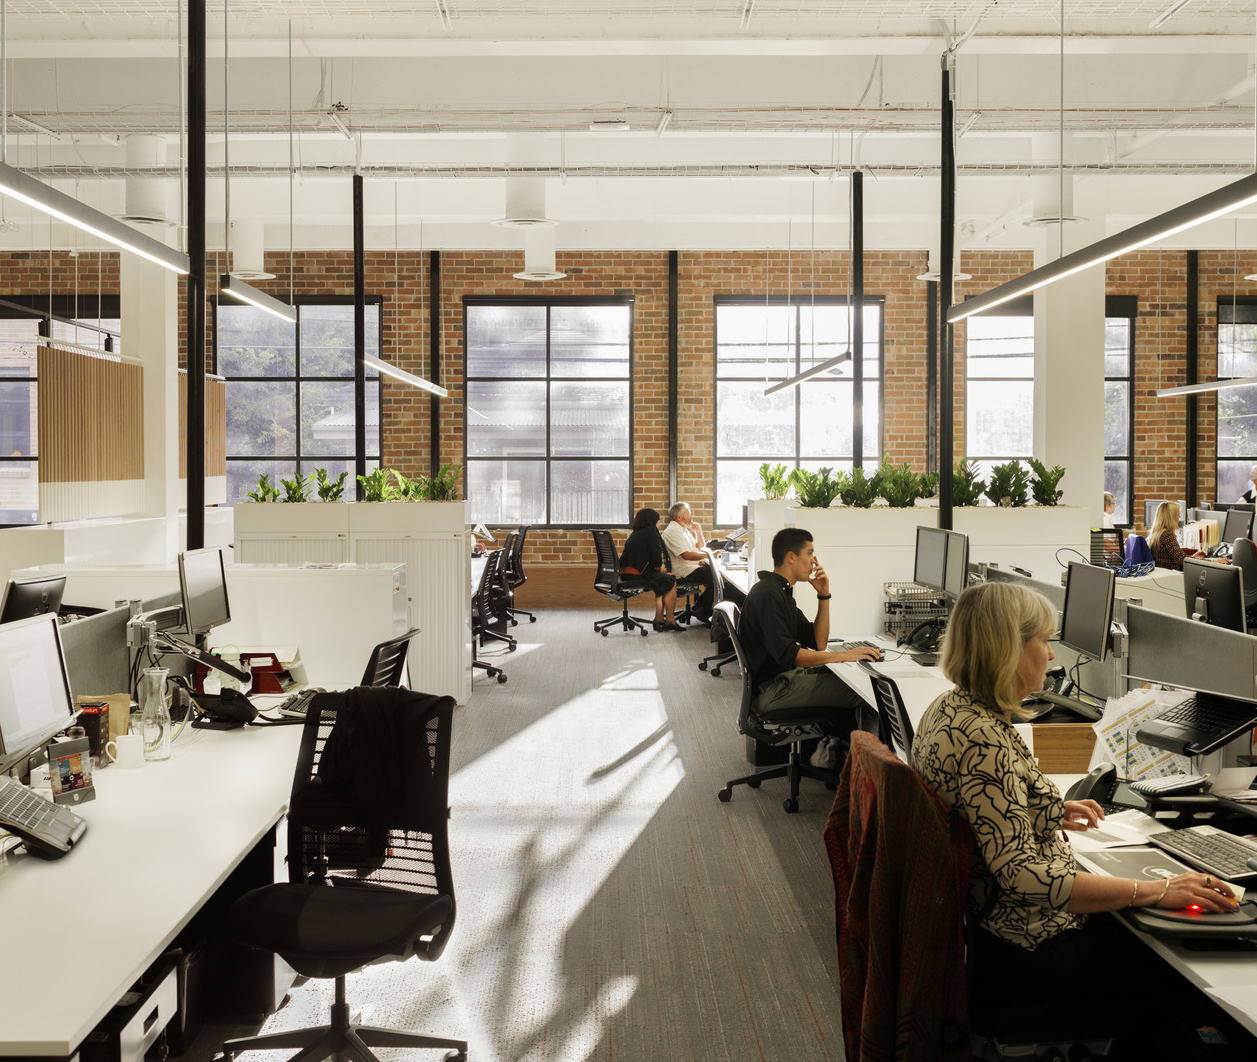 The Salvation Army HQ was part of pro bono work by Bates Smart. Photo by Trevor Mein.